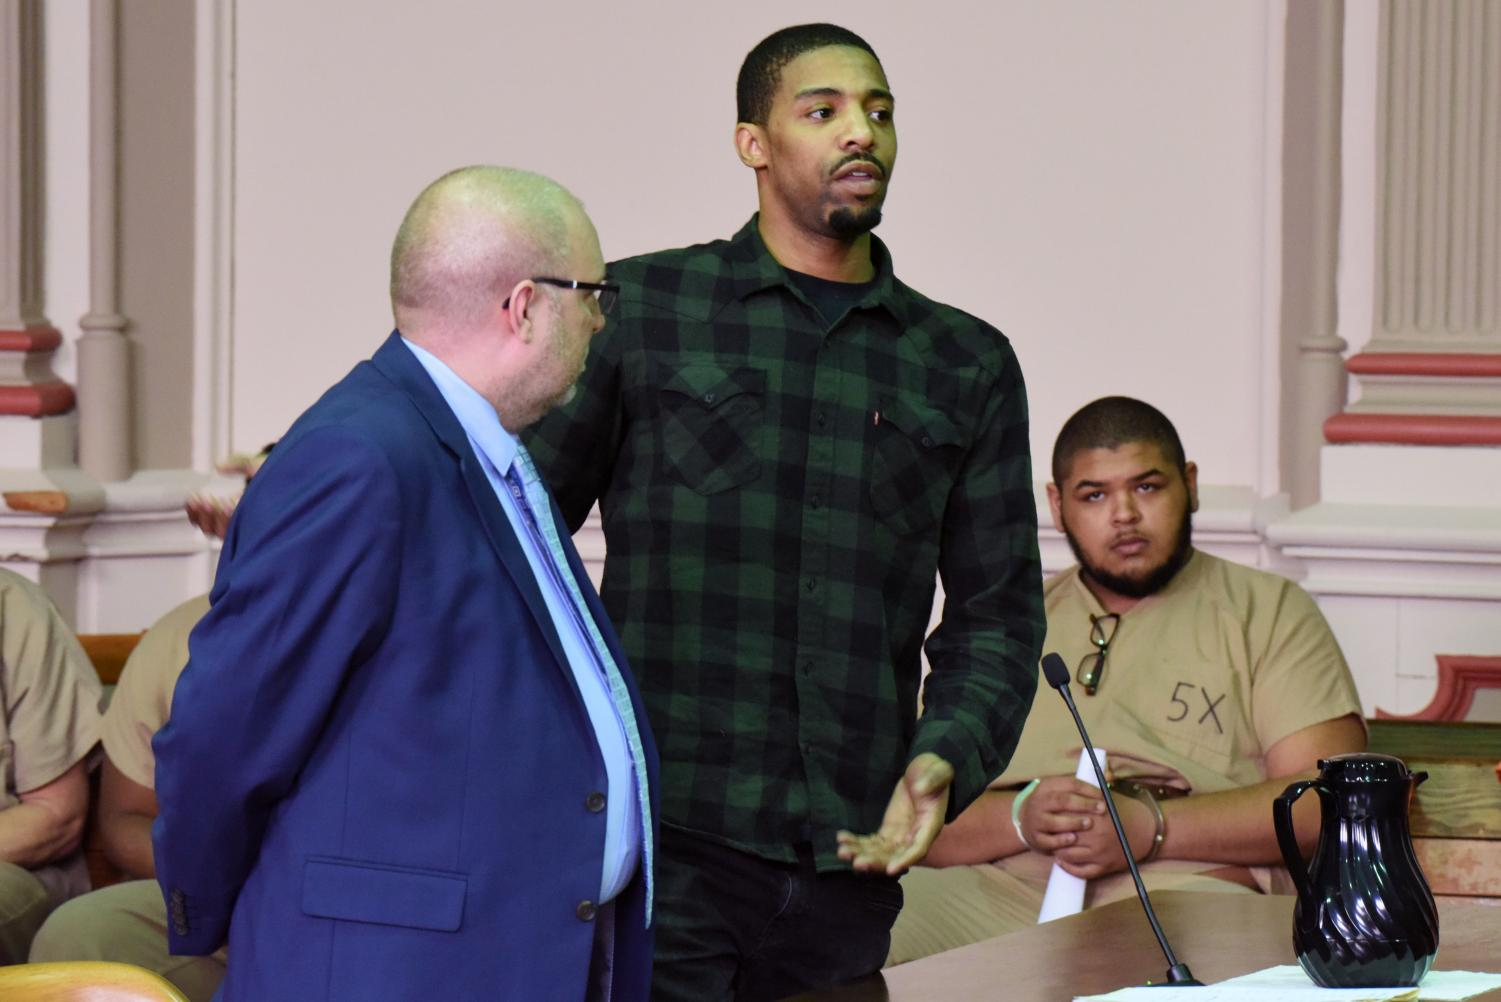 Facing multiple felony drug charges, Devonte Kitchen returned from Michigan to Muskingum County, alongside his family, for sentencing. Kitchen thanked his family for their unwavering support throughout this process.